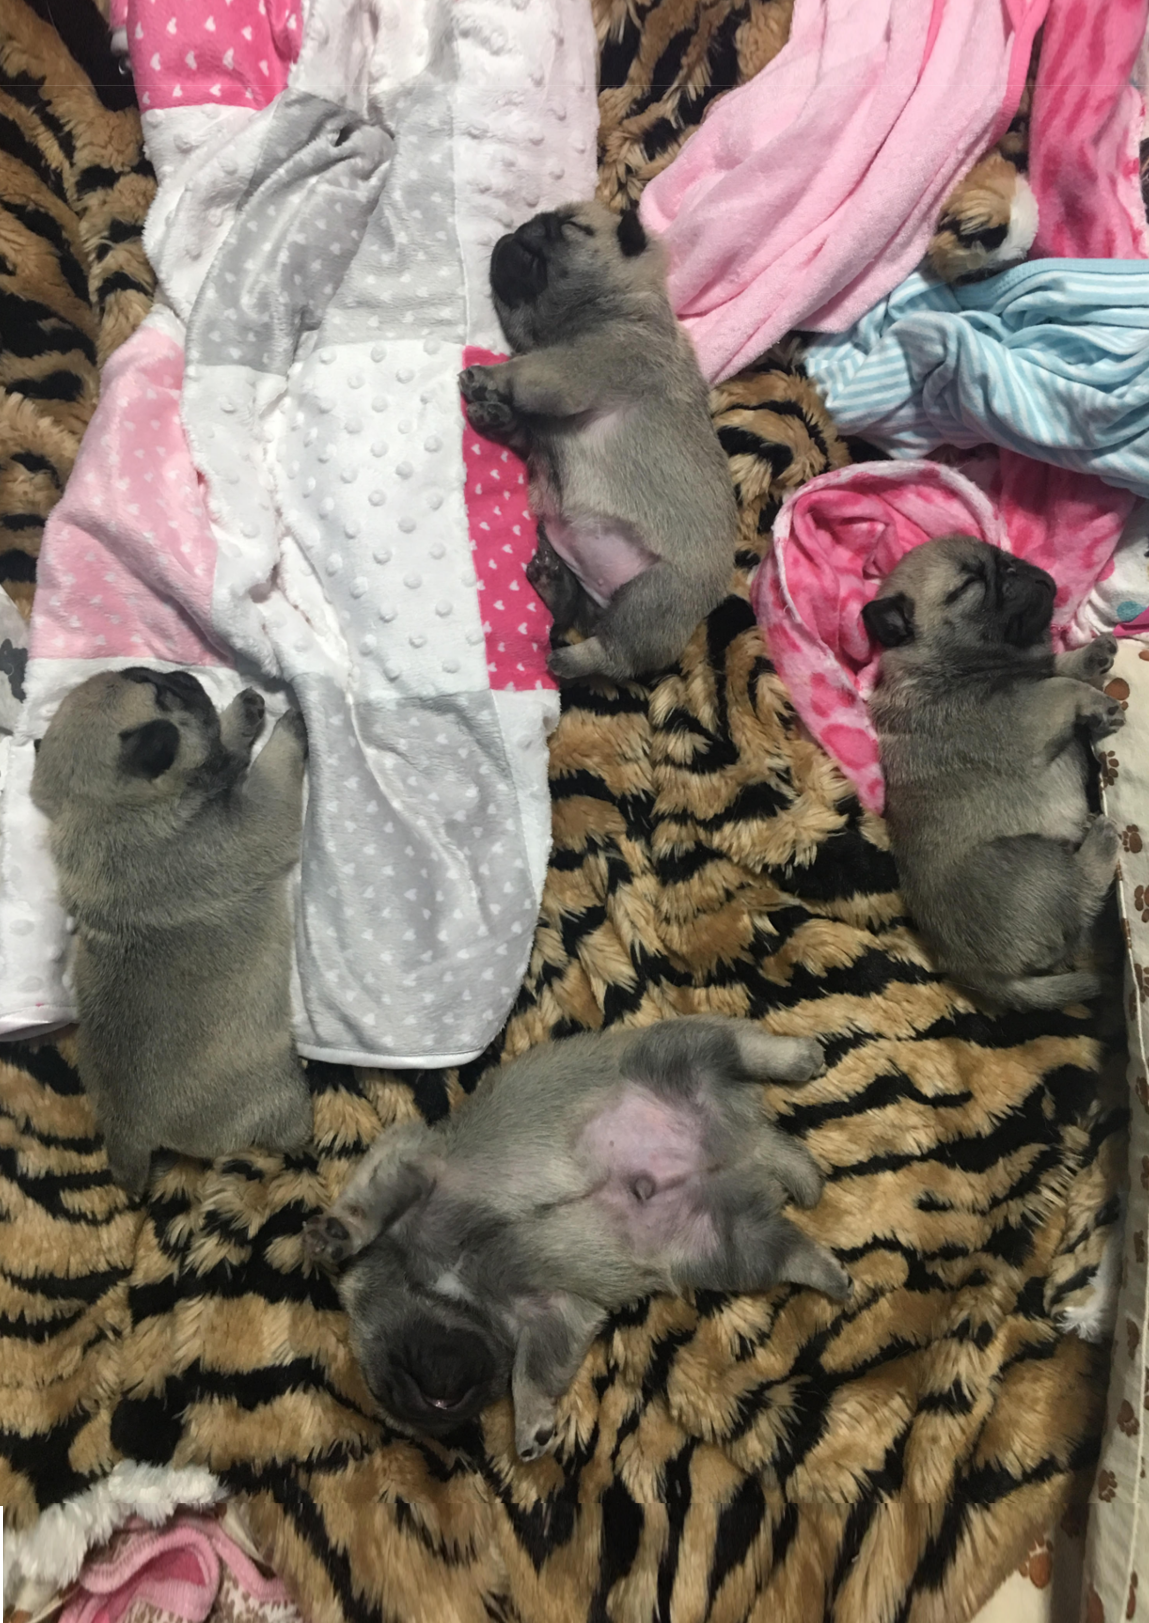 Pug Puppies on a blanket